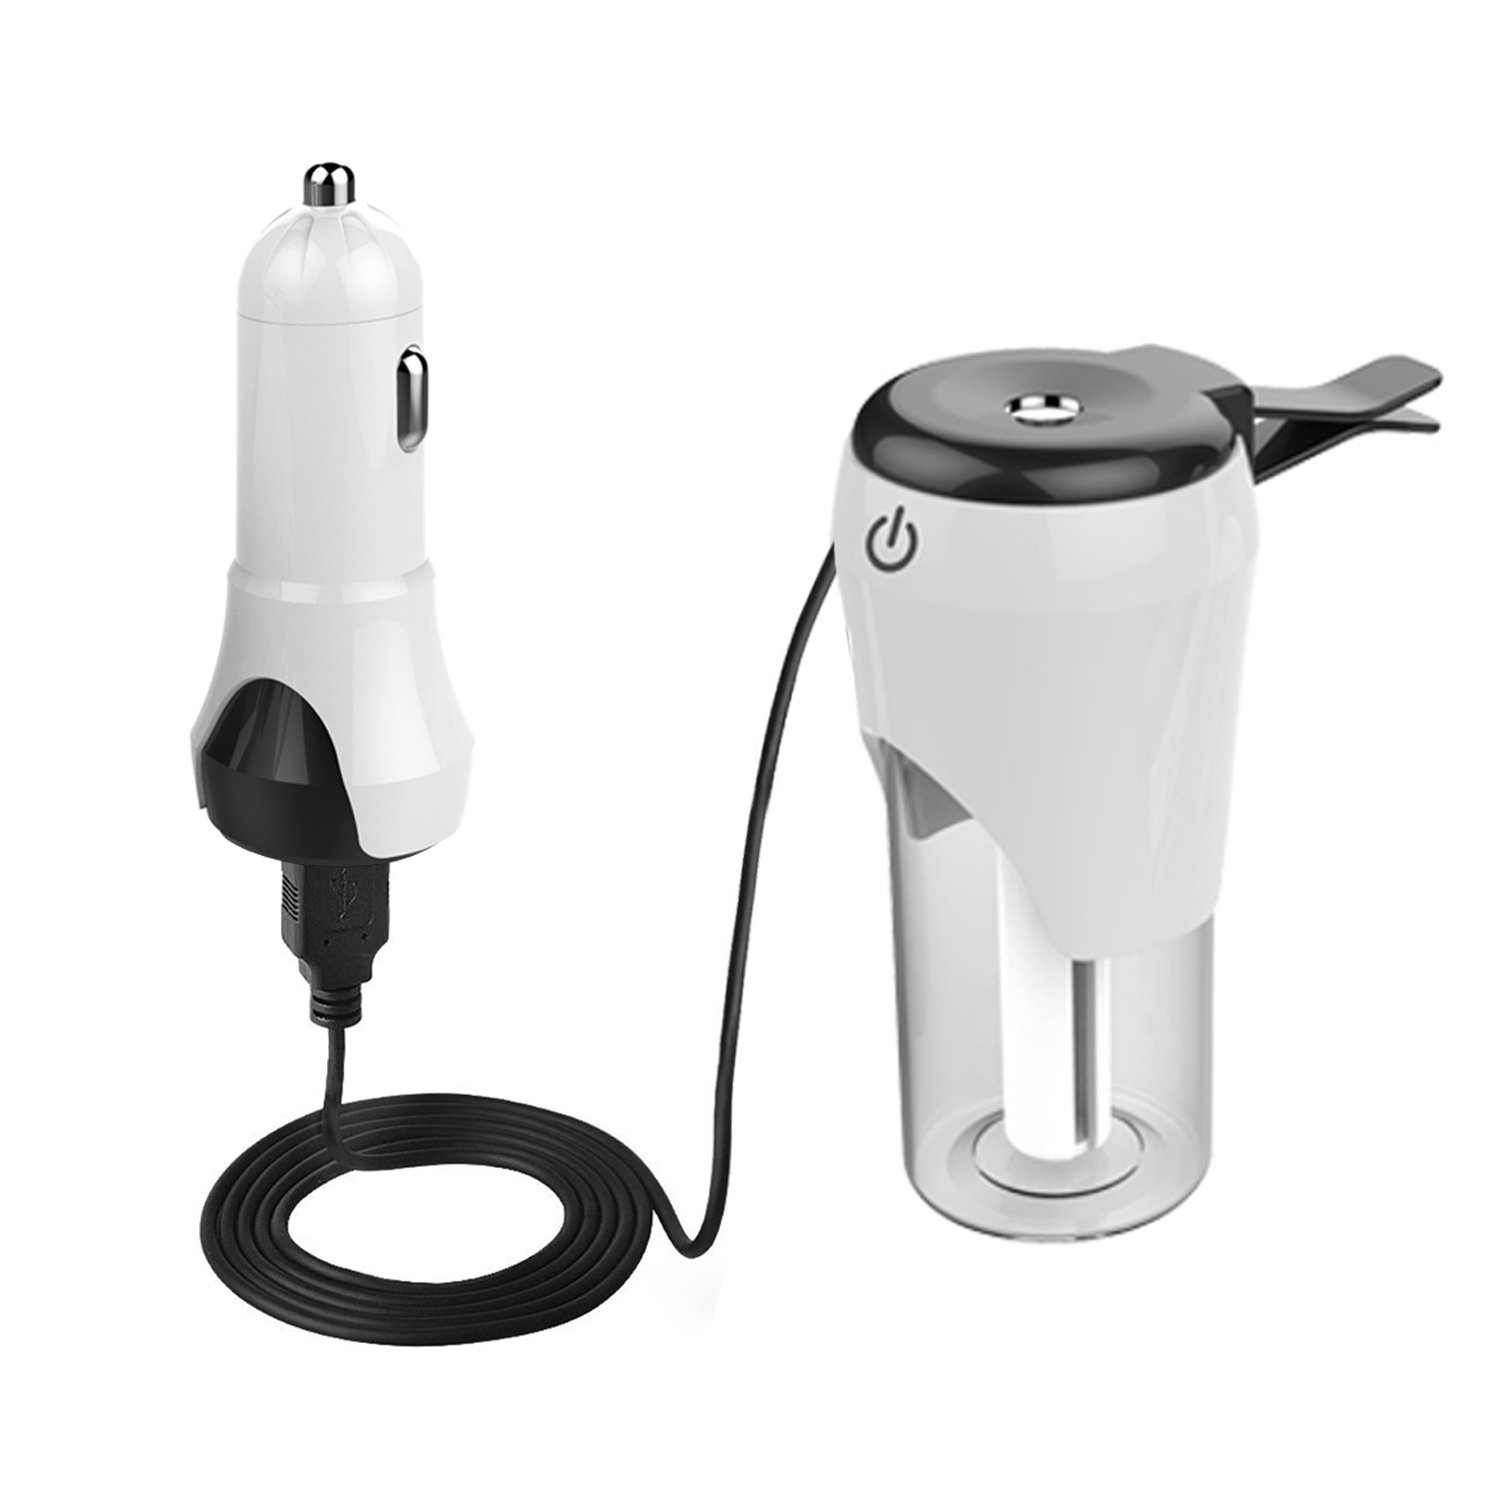 Dxmart Car Humidifier 2 in 1 Cool Mist Air Diffuser 50ml with 2 USB Port Car charger